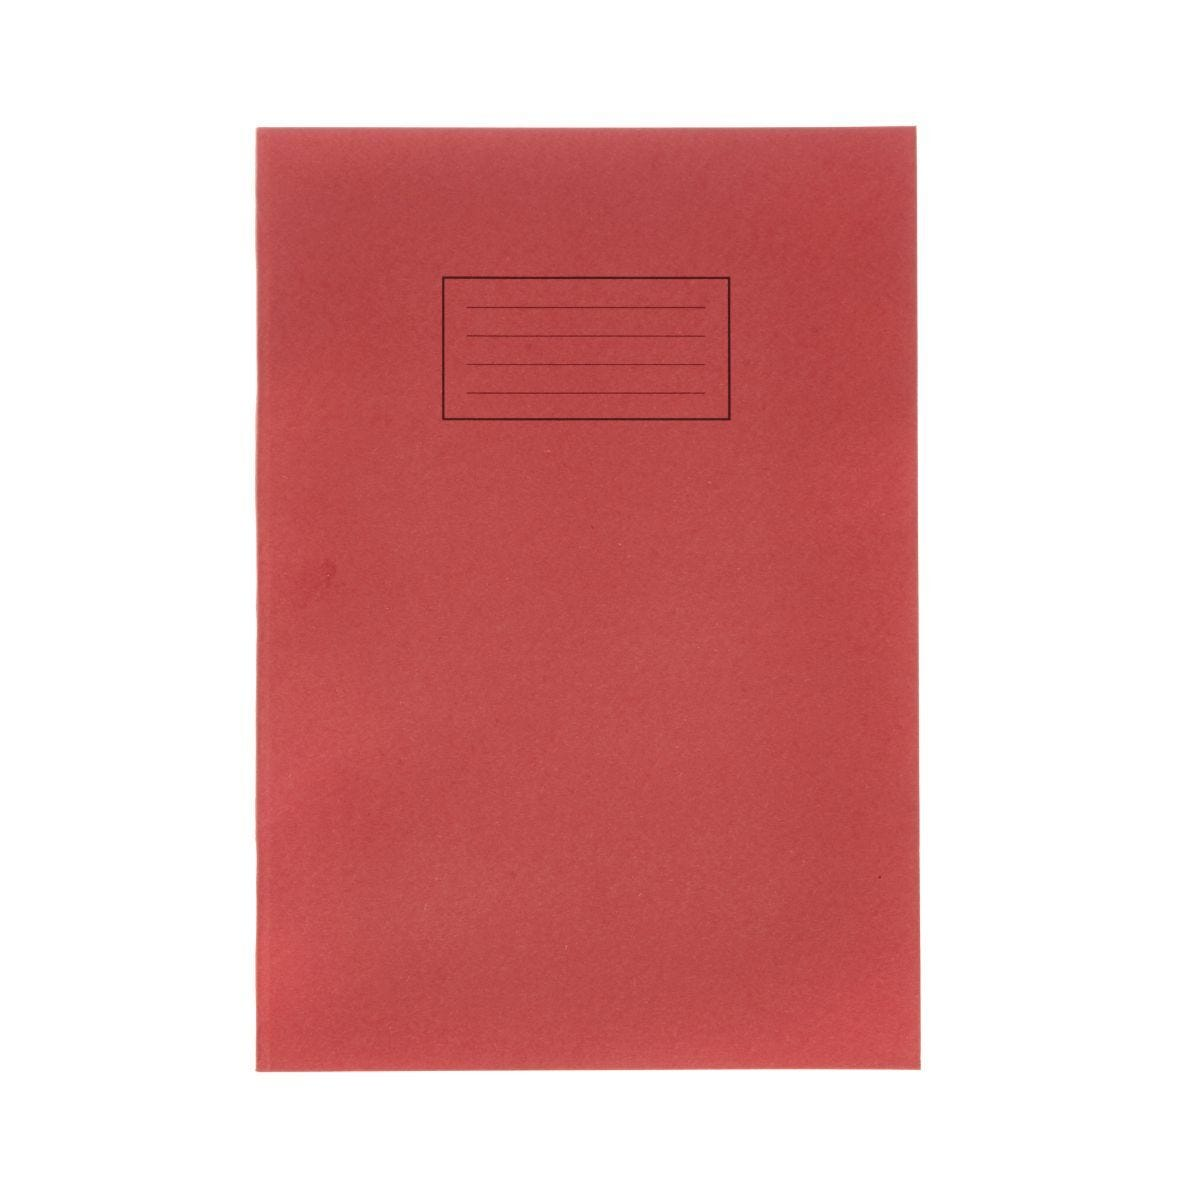 Silvine Exercise Book A4 Ruled 75gsm Pack of 40